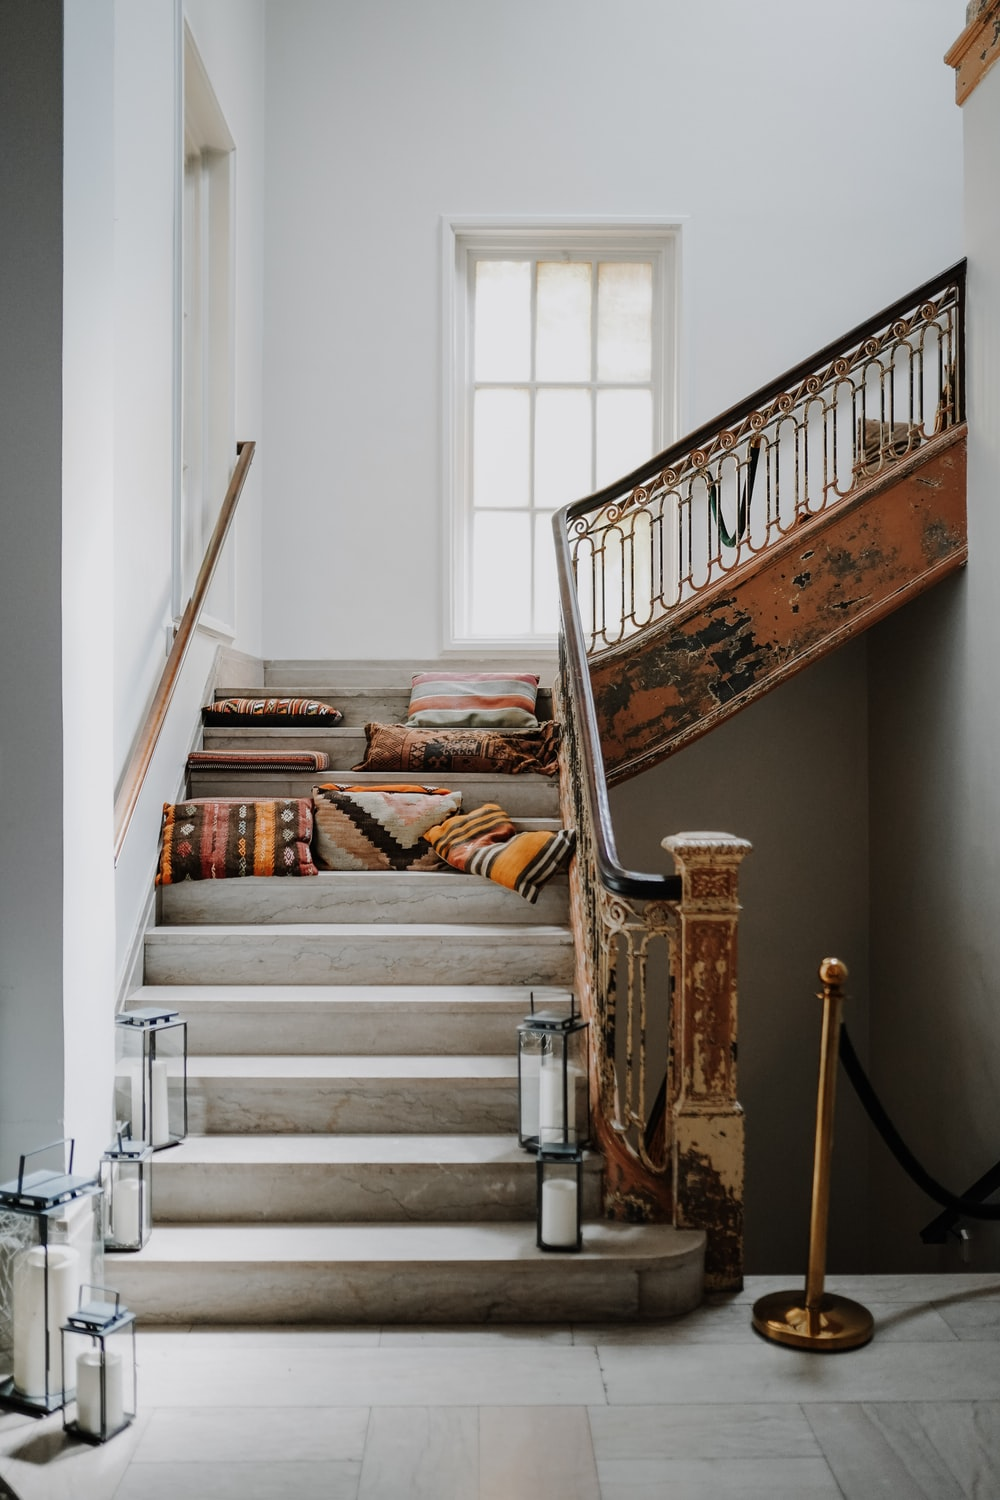 brown wooden staircase with books